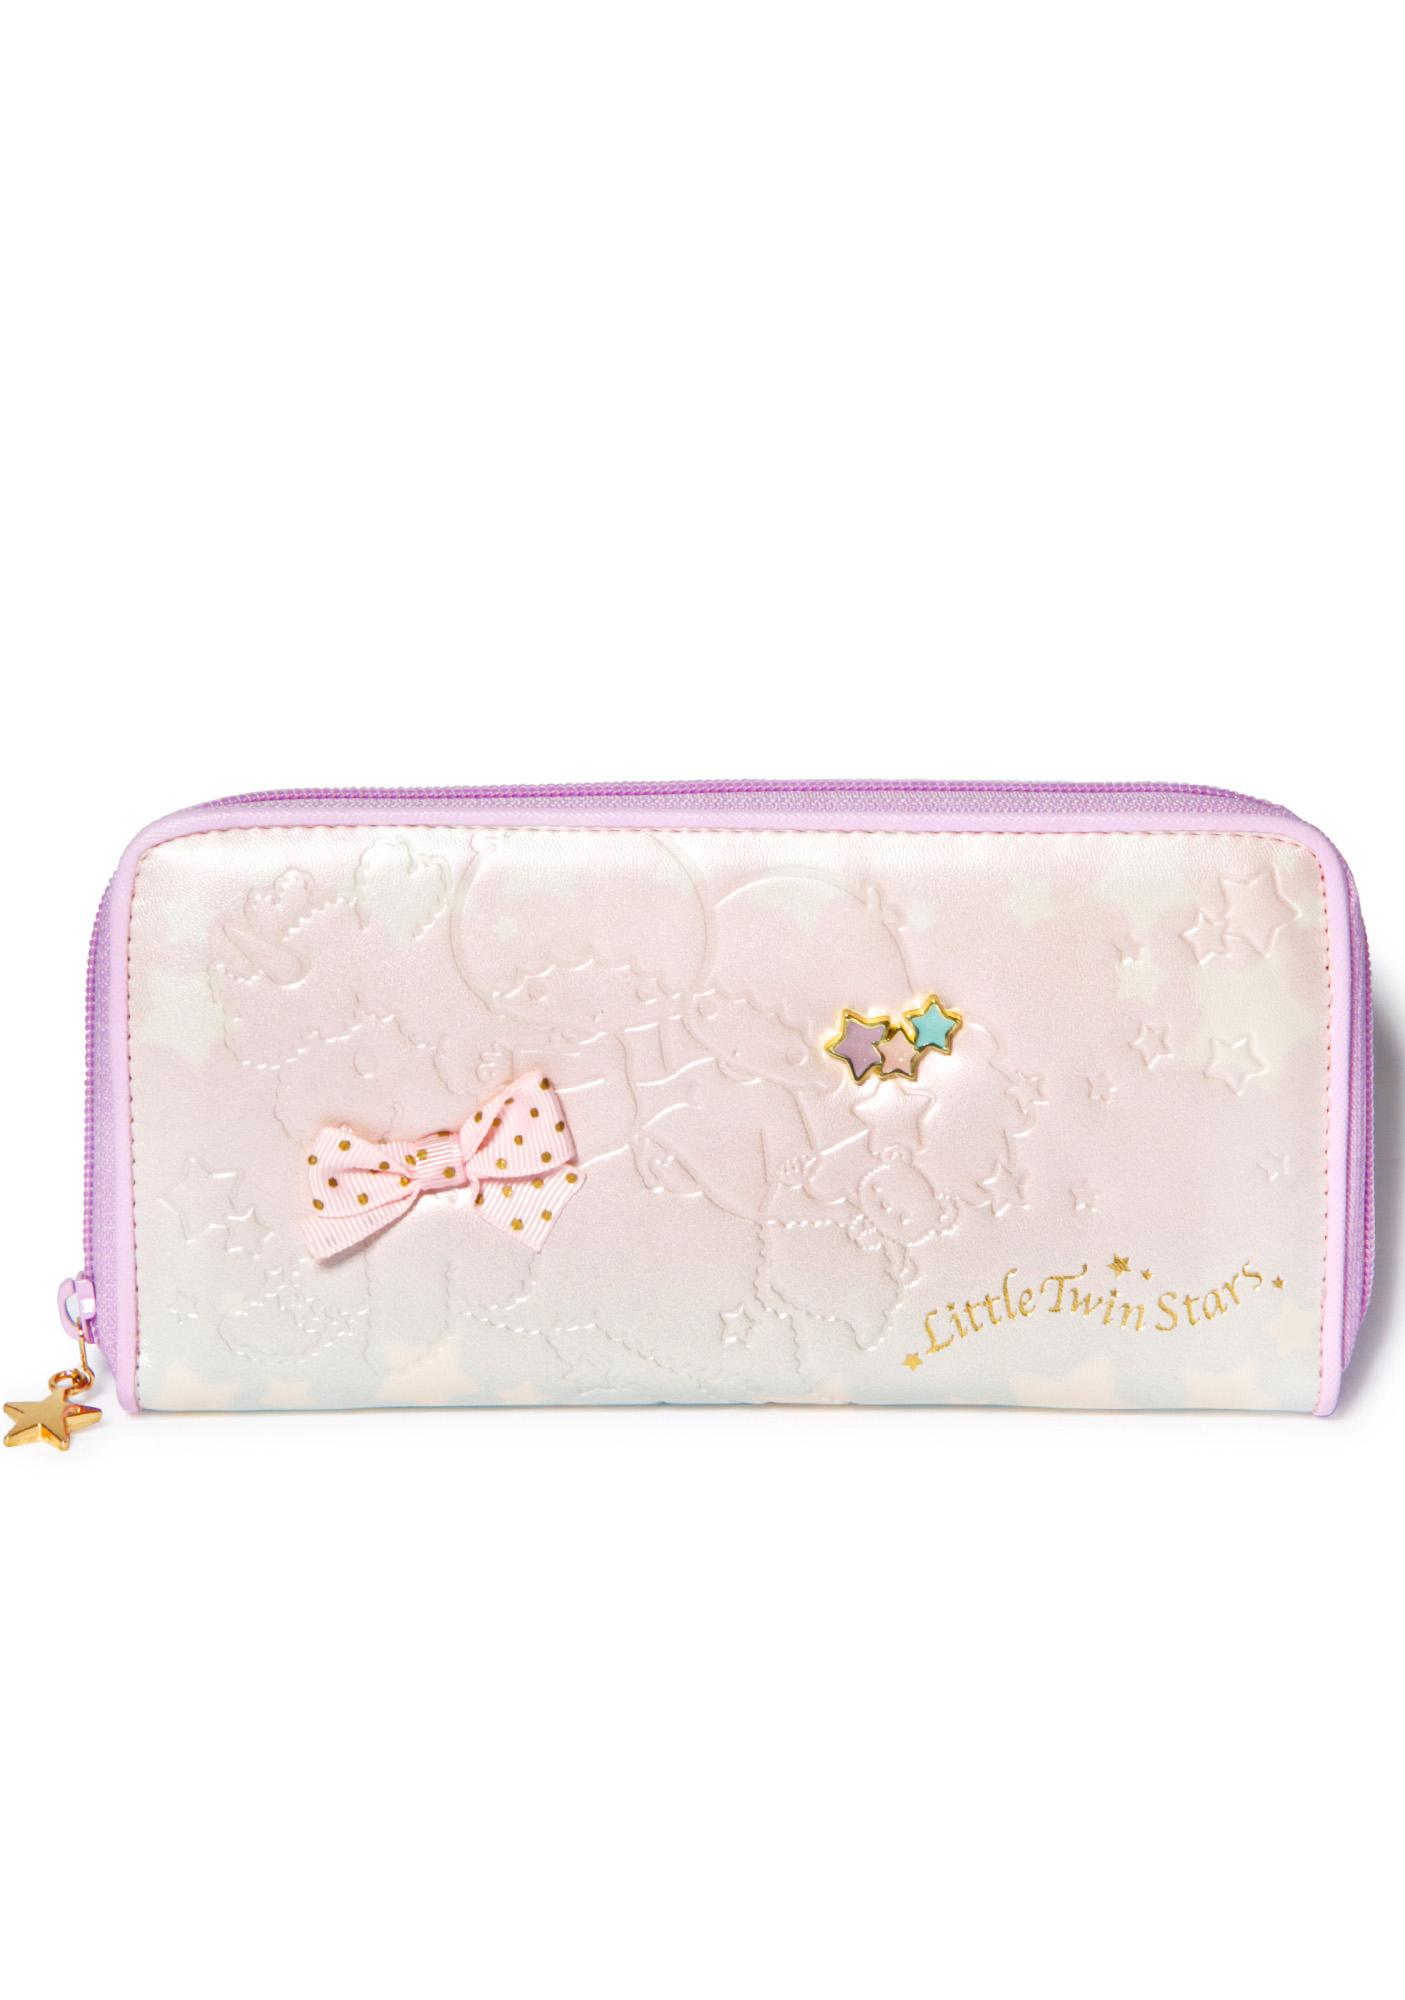 Sanrio Little Twin Stars Unicorn Wallet